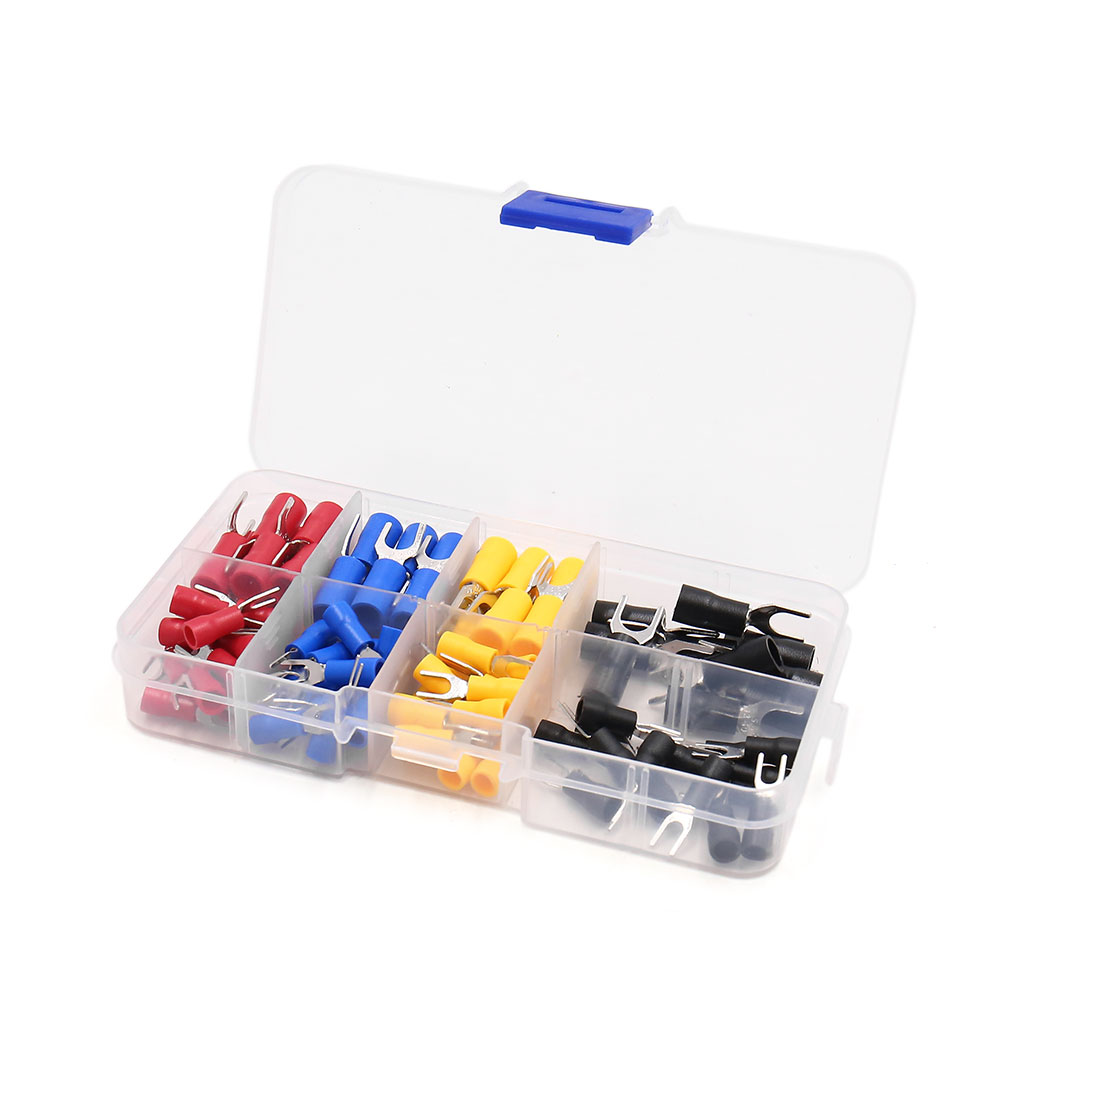 100pcs  10 Gauge Fork Spade Insulated Wire Crimp Terminals Connector Kit